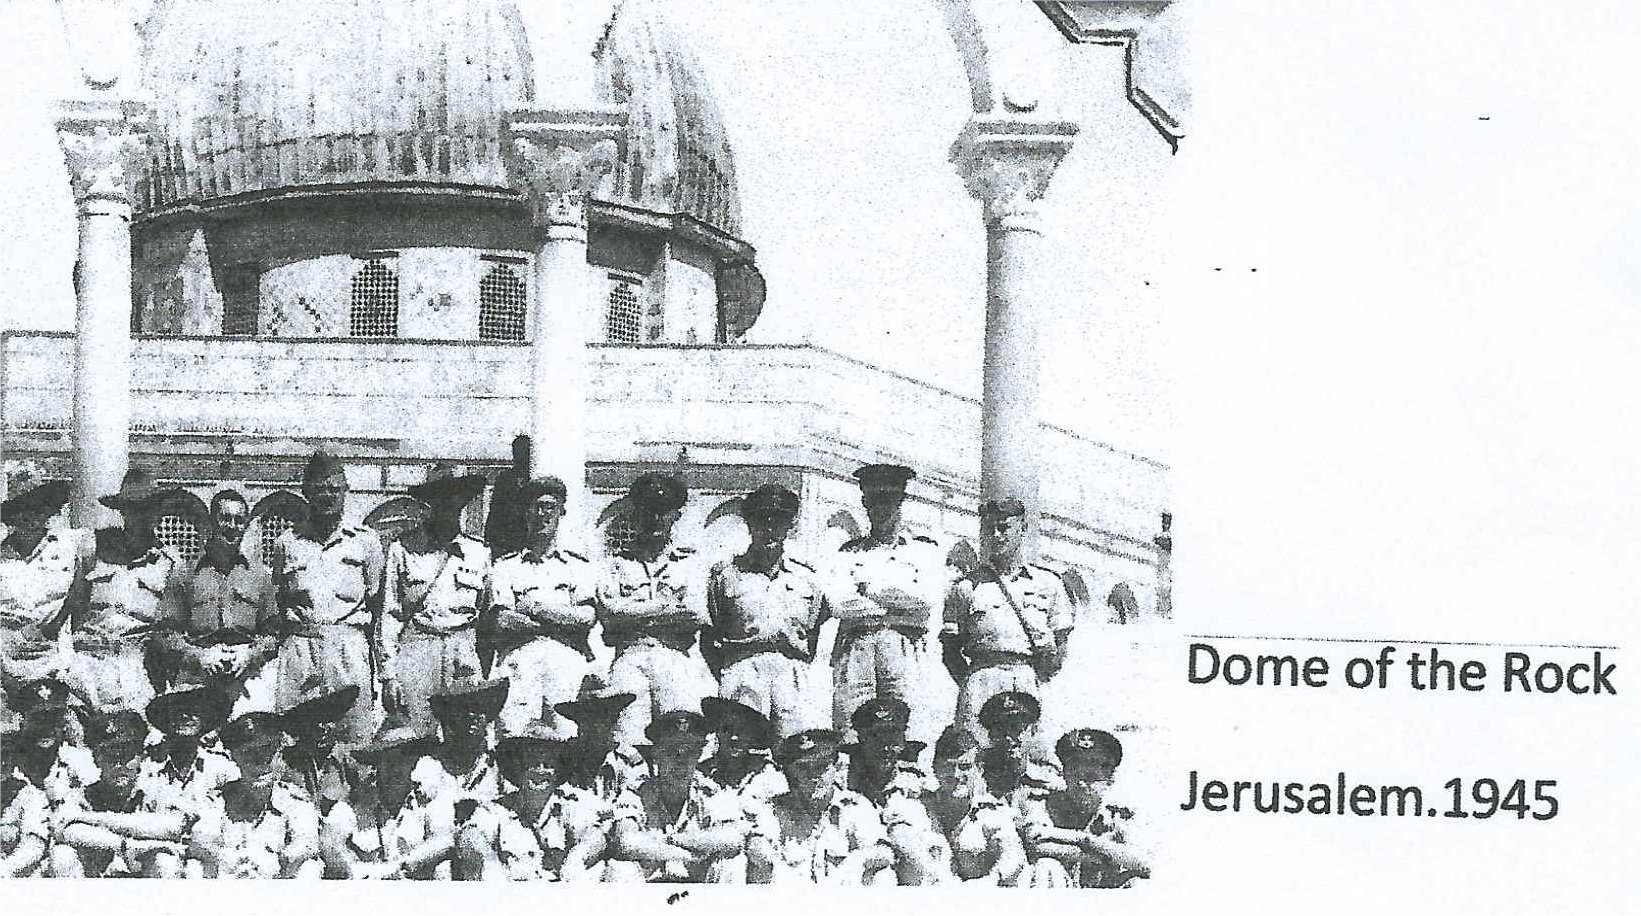 14_M Ivicevich_Dome of the Rock_Jerusalem 1945